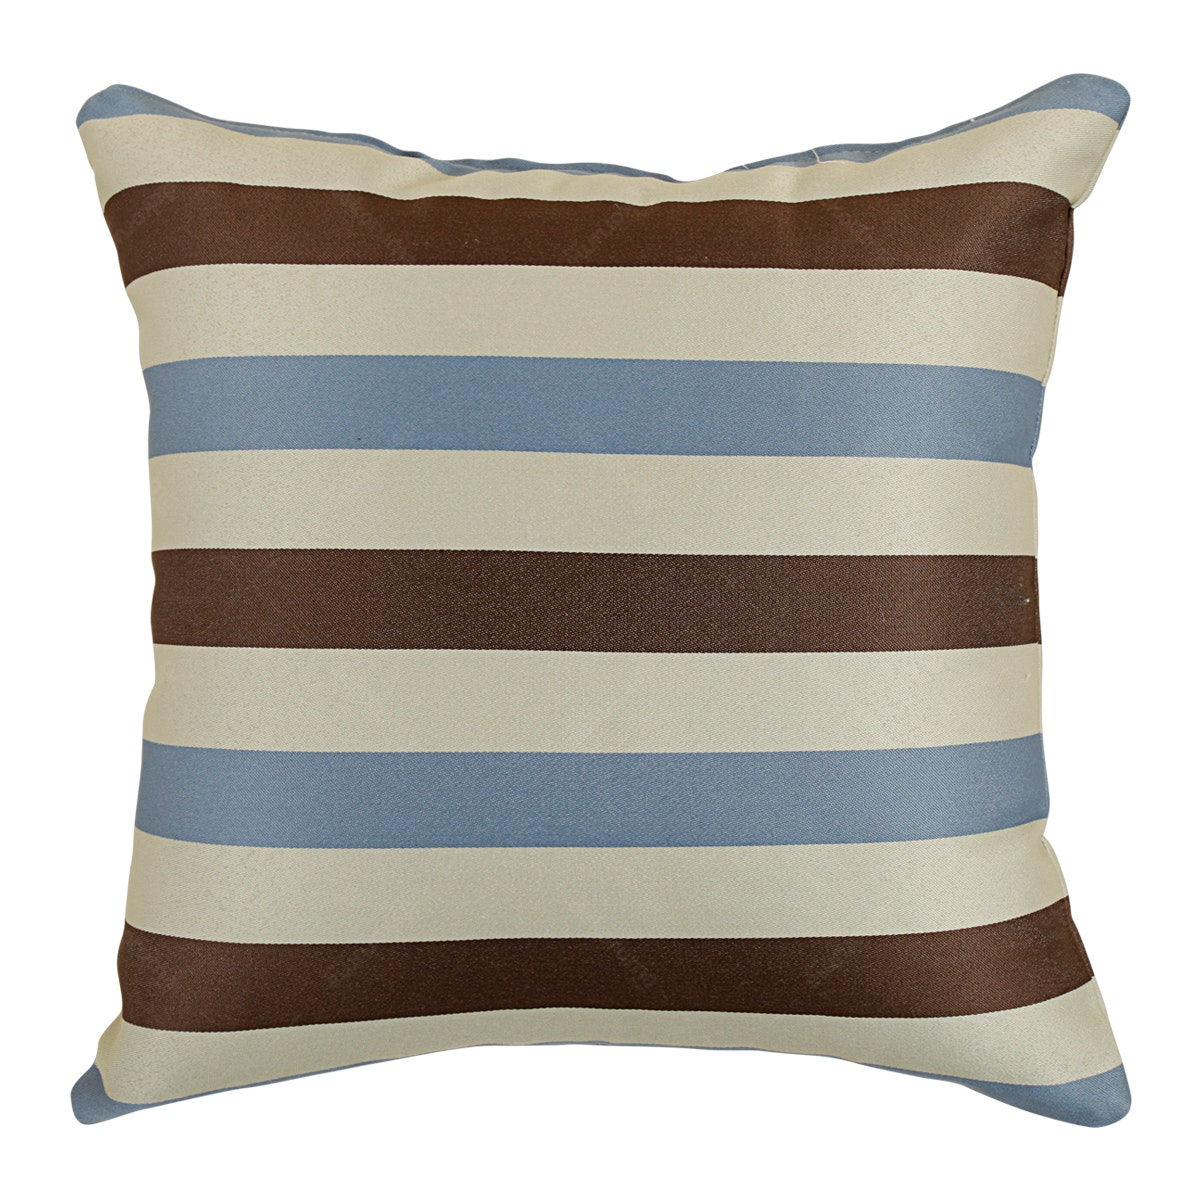 Beam and Co Cushion Cover 45x45cm Case Freeway Mountain